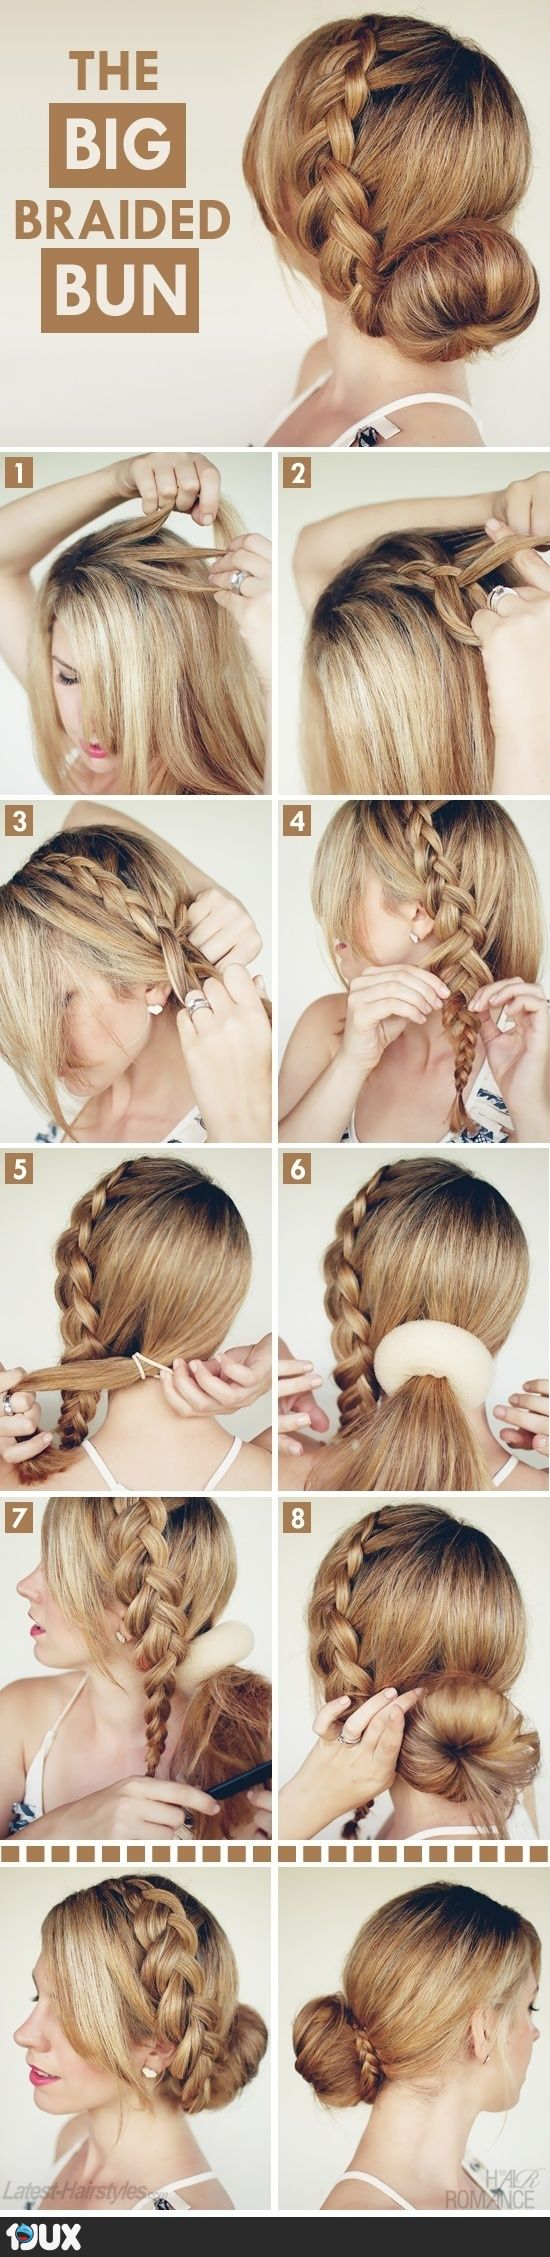 Hairstyle tutorial simple